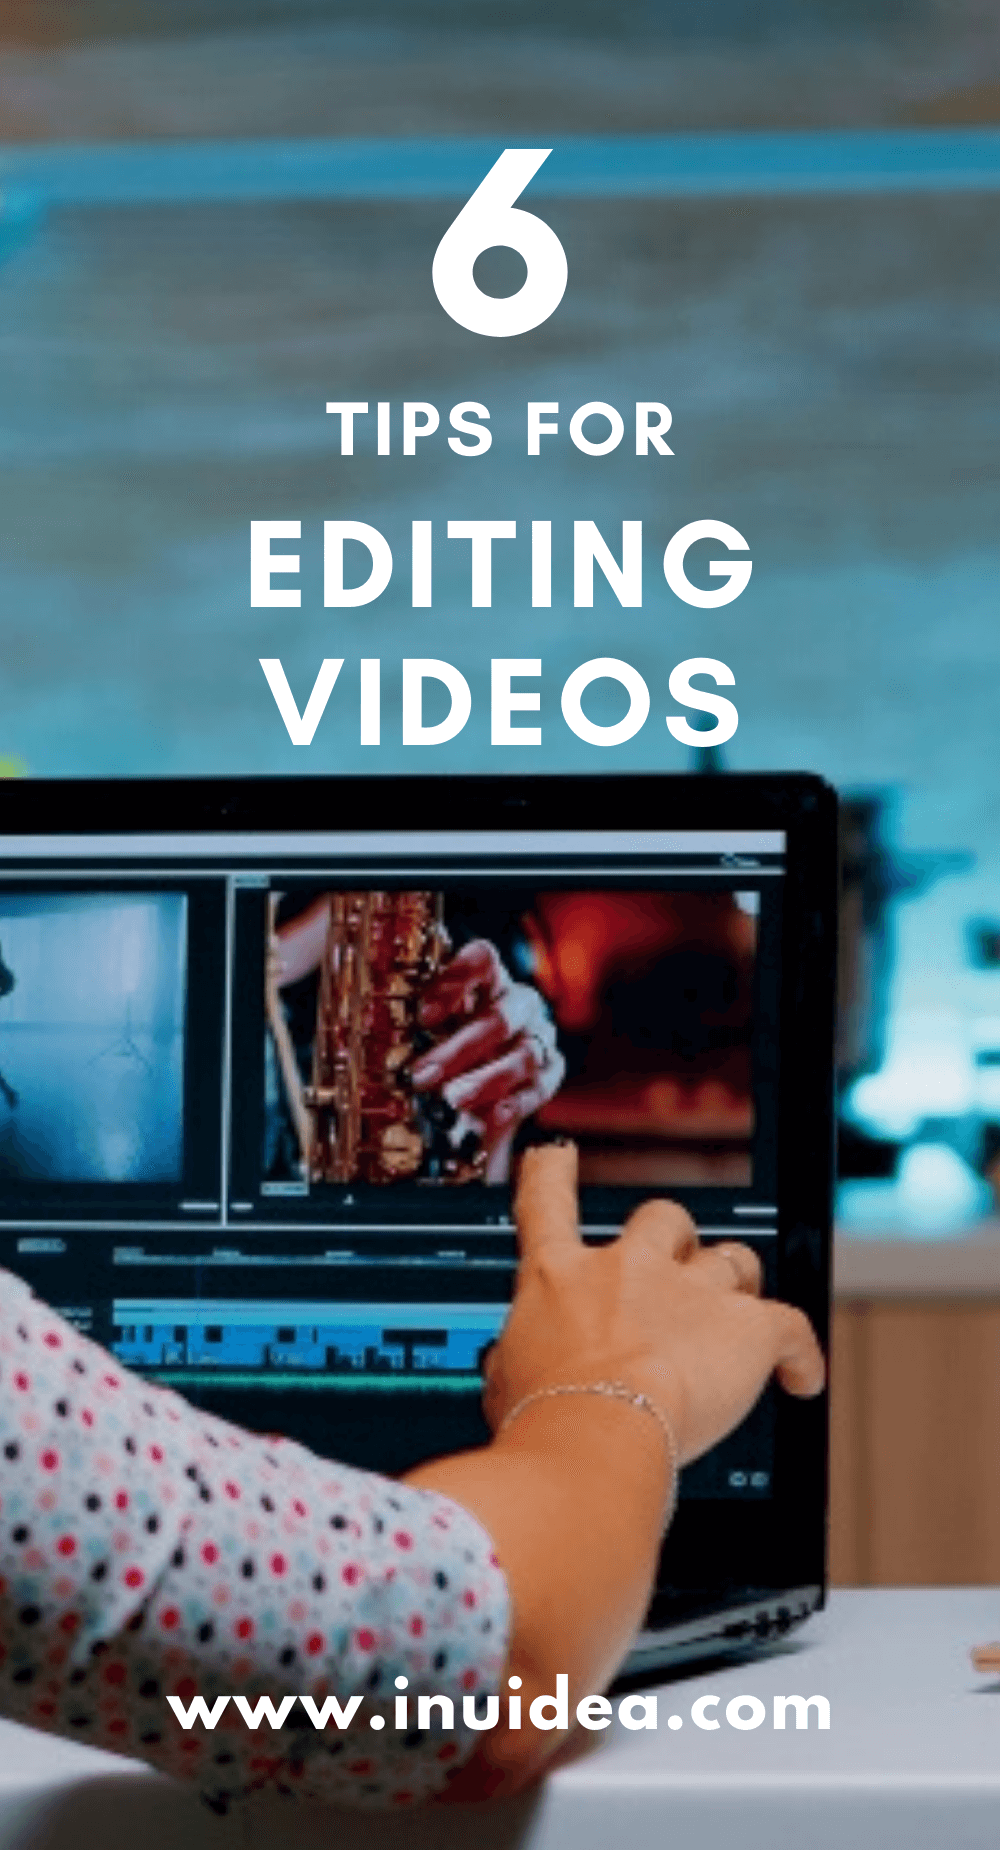 6 Tips for Editing Videos and Improving Your Website Content